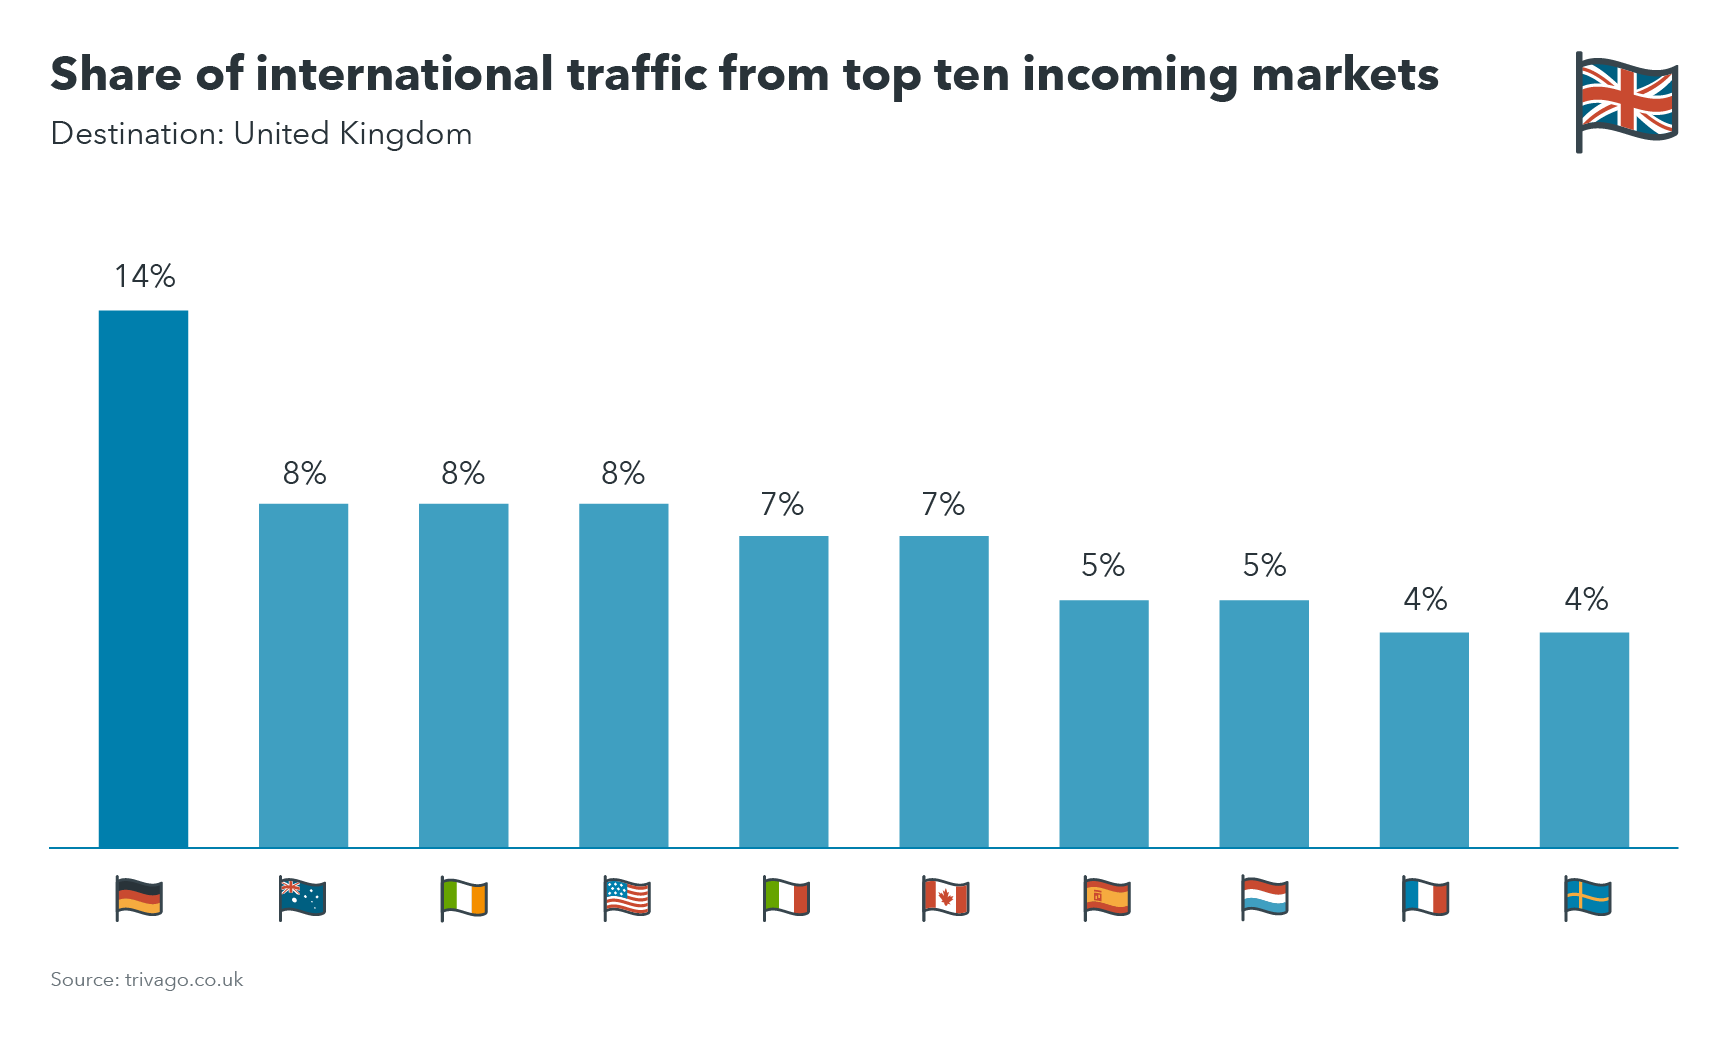 Chart showing share of international traffic from top ten incoming markets to UK destinations